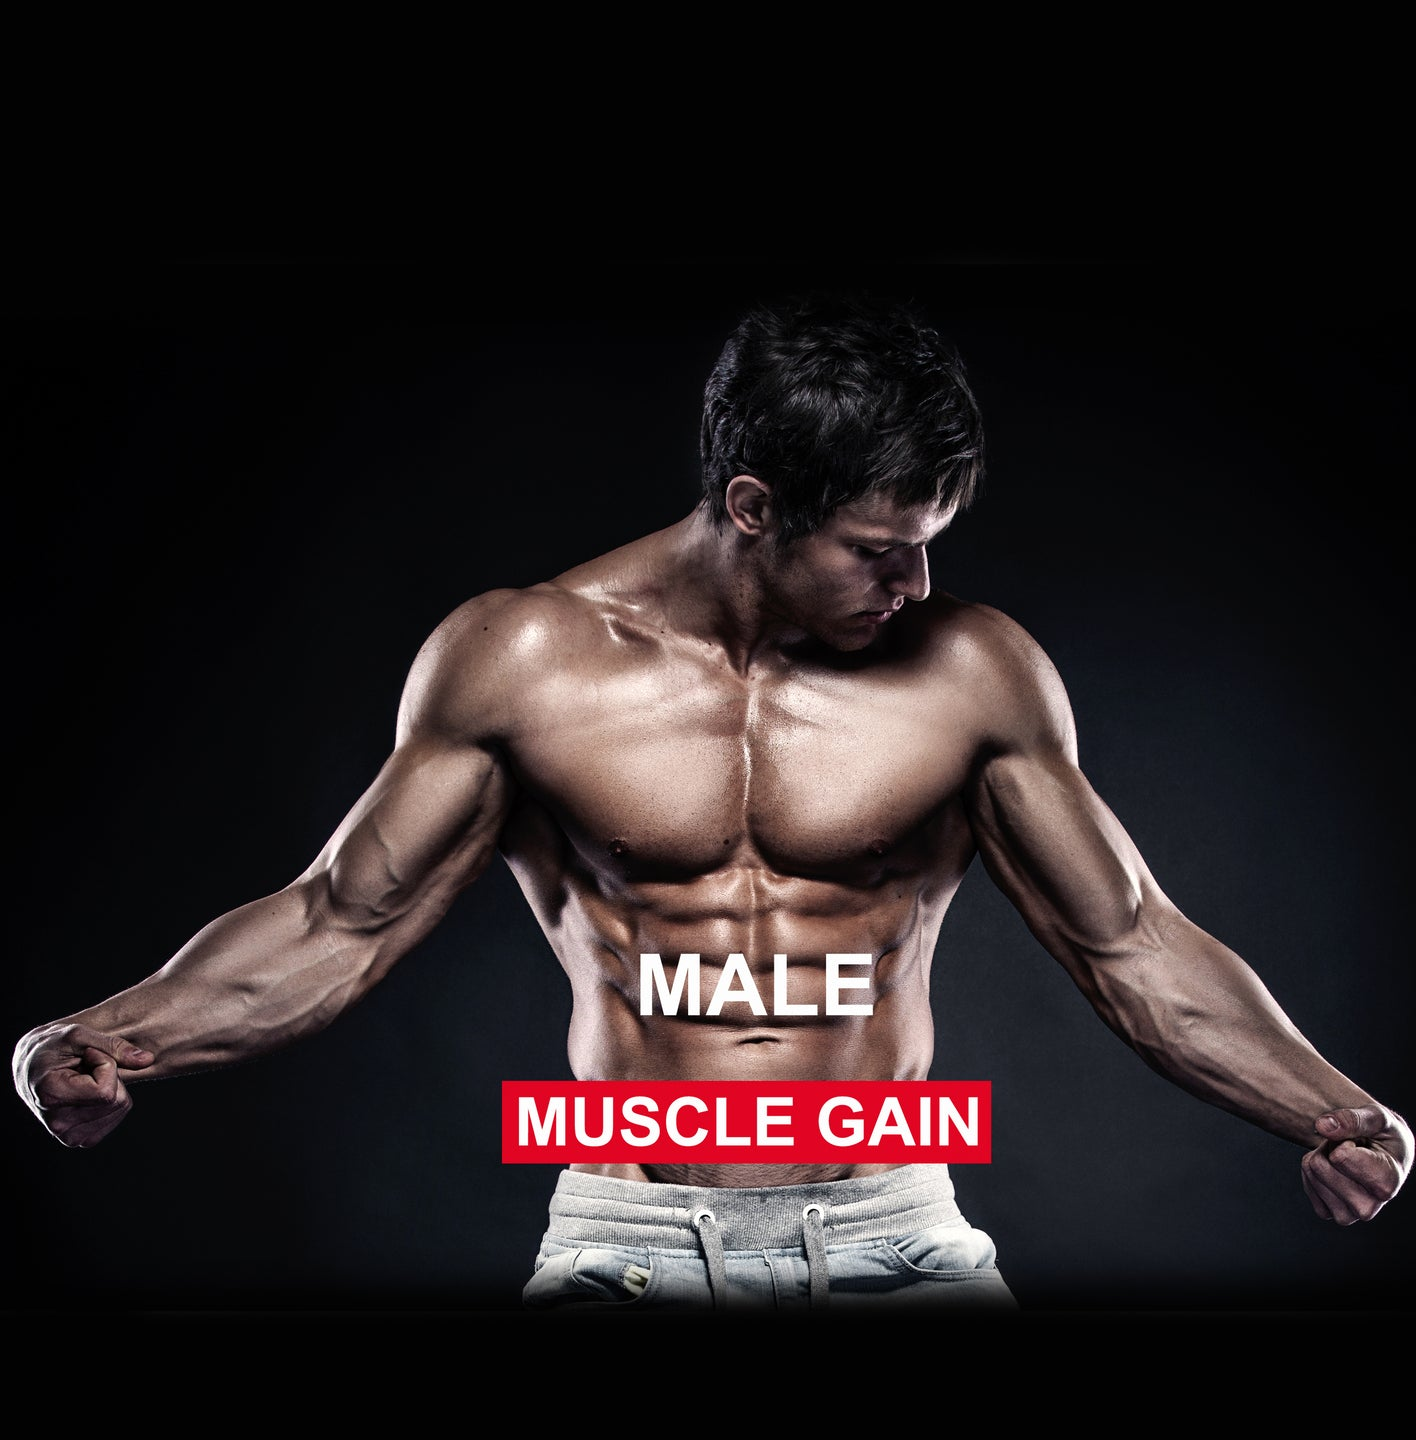 NUTRITION - MALE muscle gain